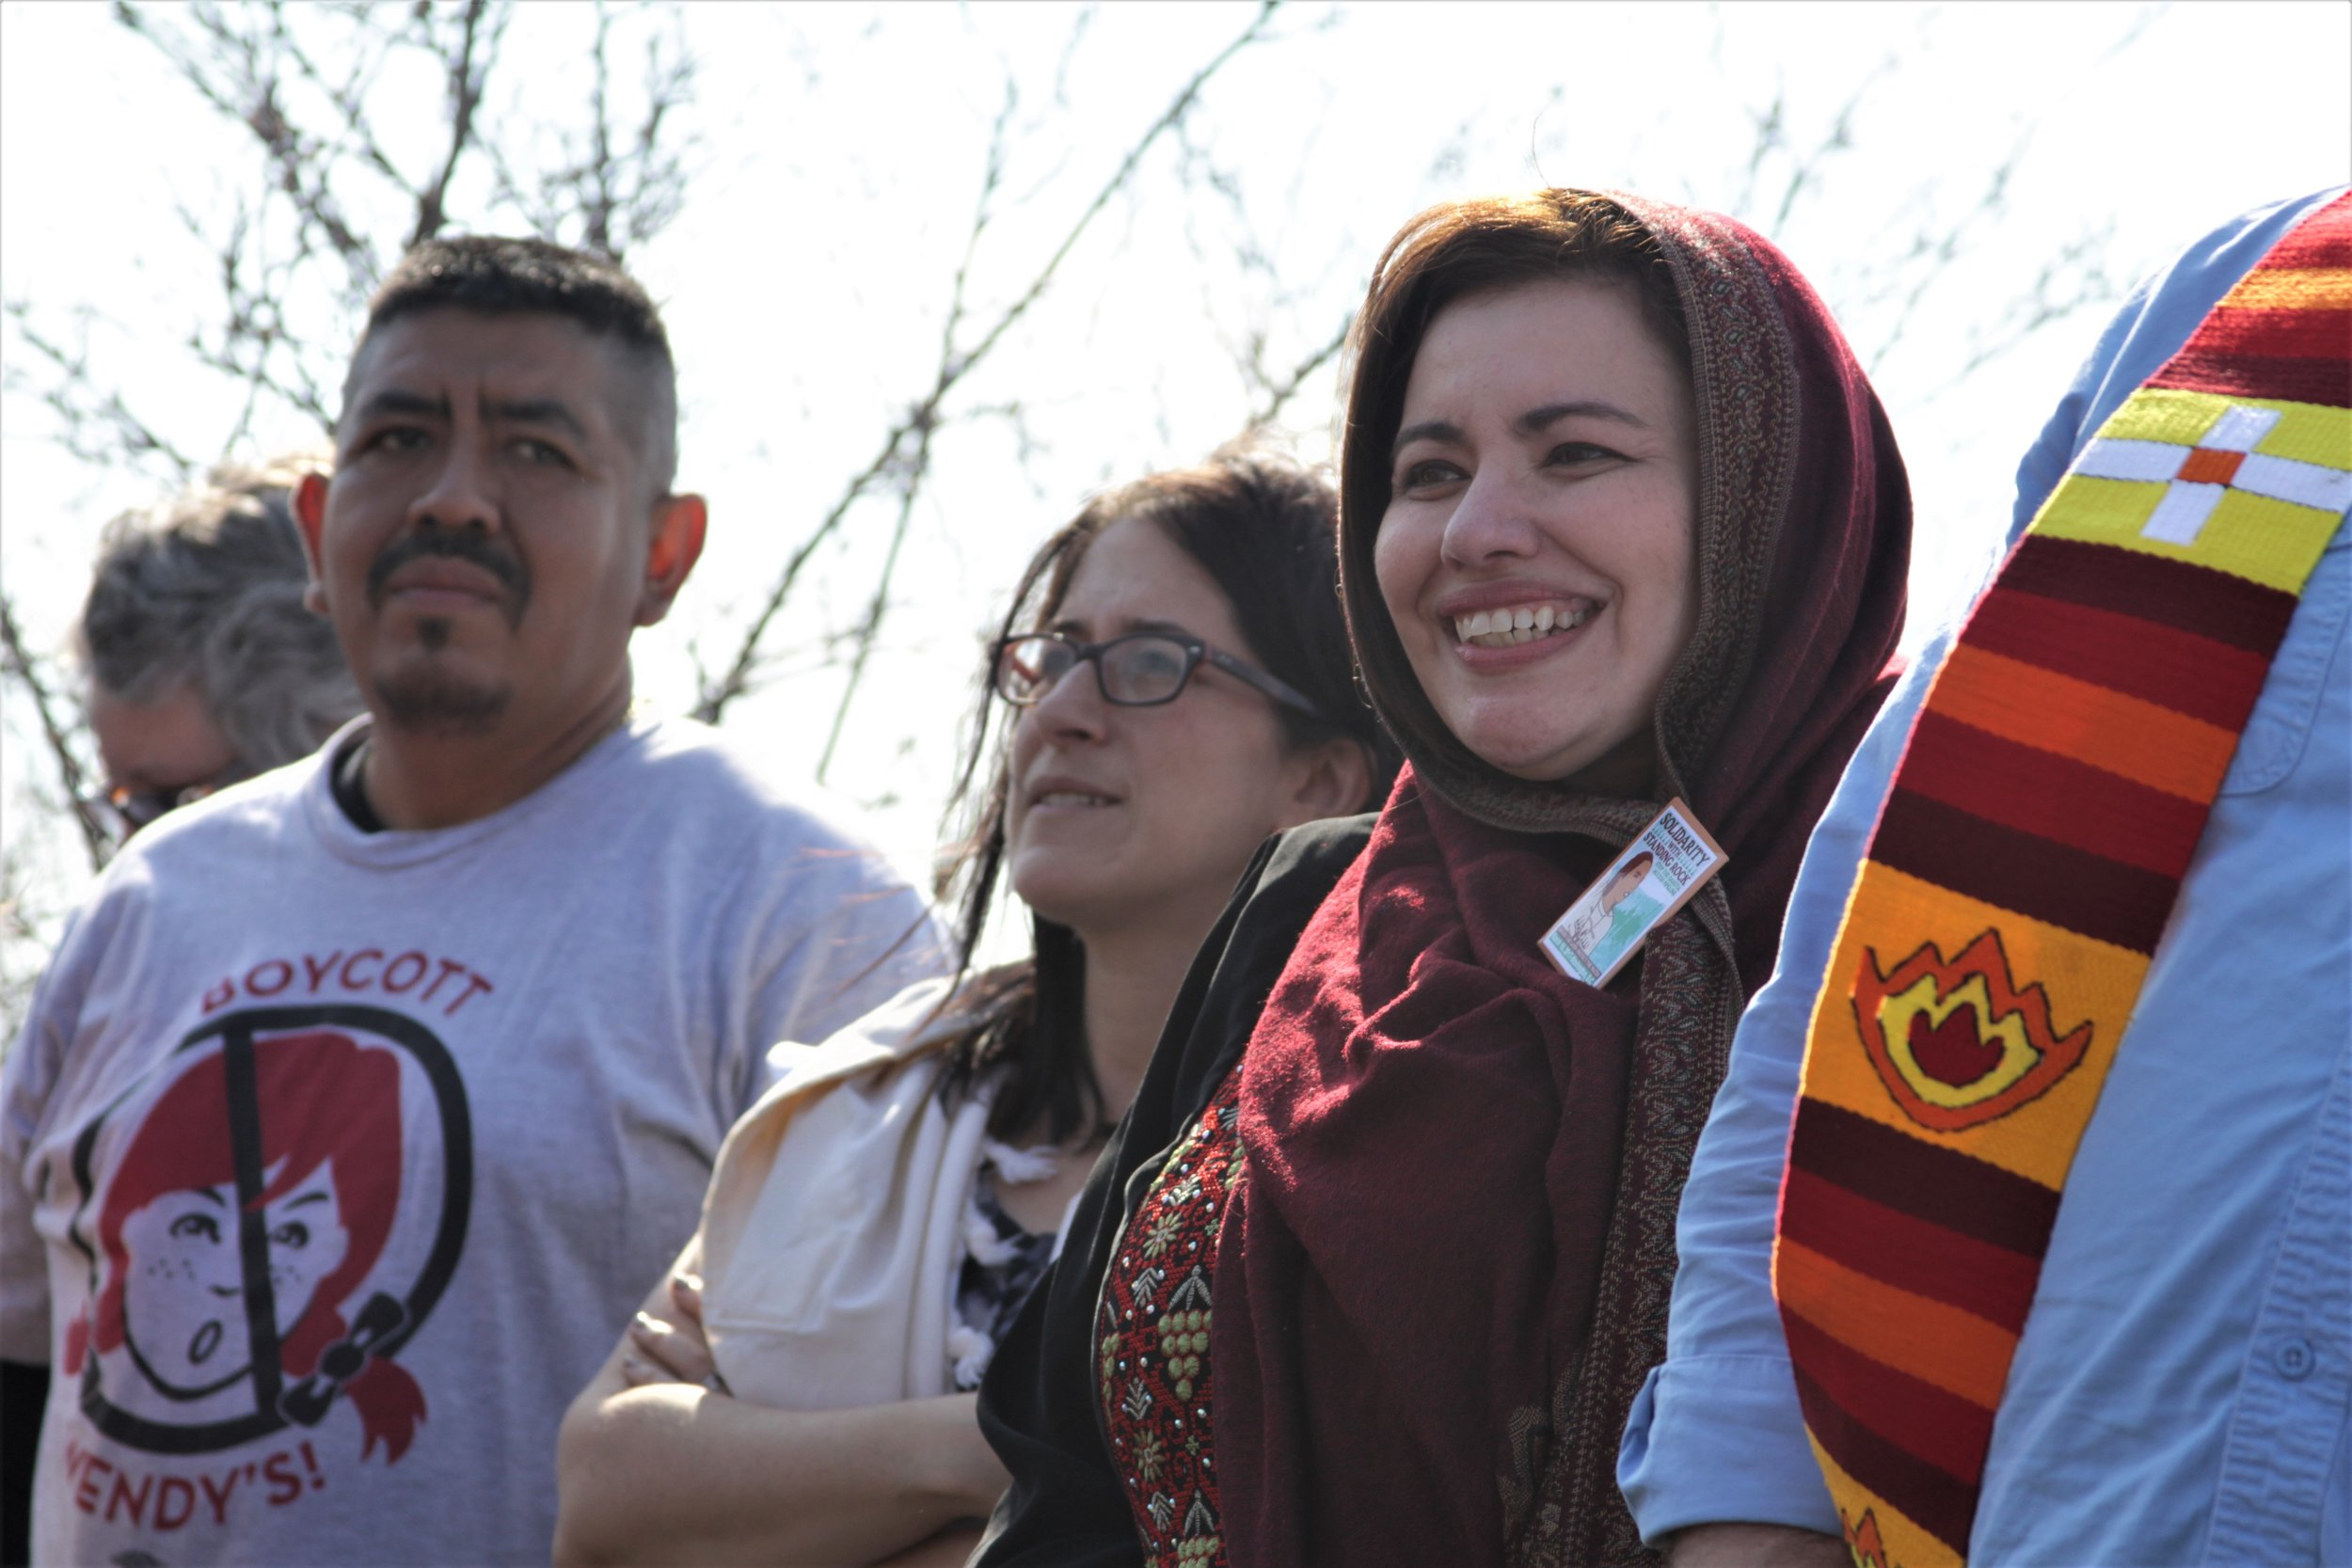 CIW's Lucas Benitez joins Rachel Kahn-Troster, Director of Programs for T'ruah and Sahar Alsahlani, Board Member of the Council on American Islamic Relations (CAIR) to welcome the nearly 100 gathered for a vigil outside Wendy's headquarters in Dublin, OH